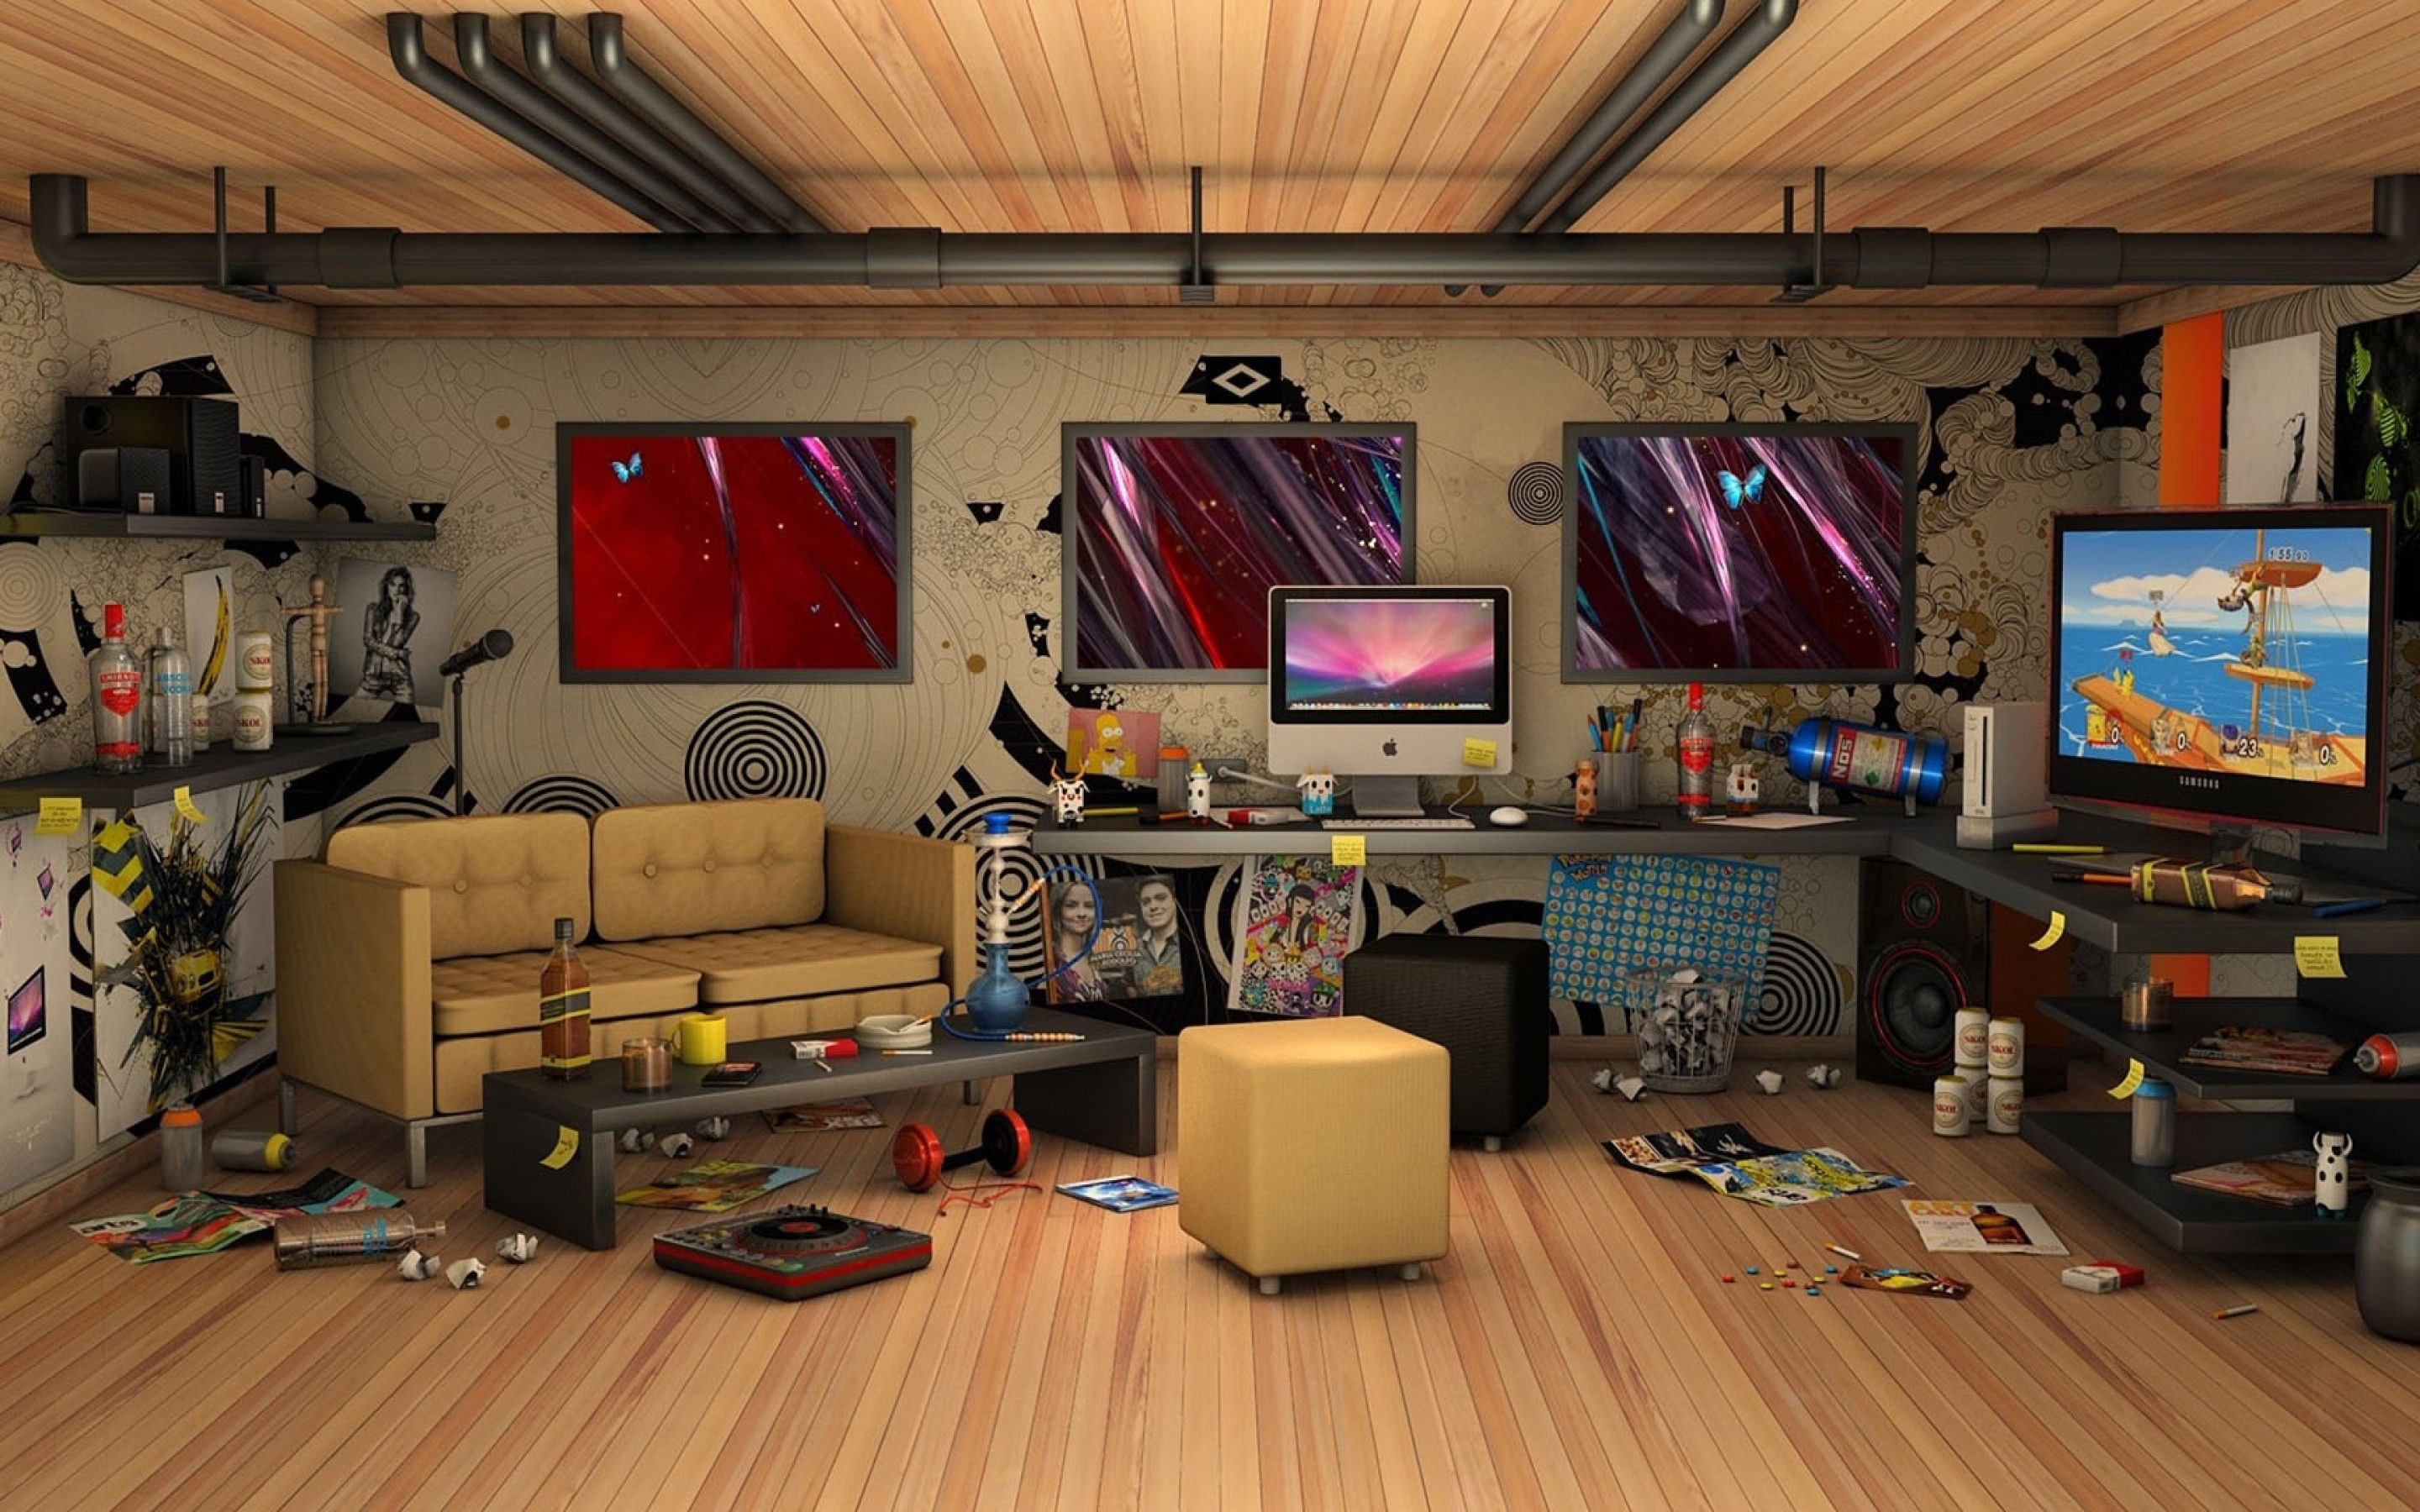 3D Messy Living Room IMac Computer Wallpaper